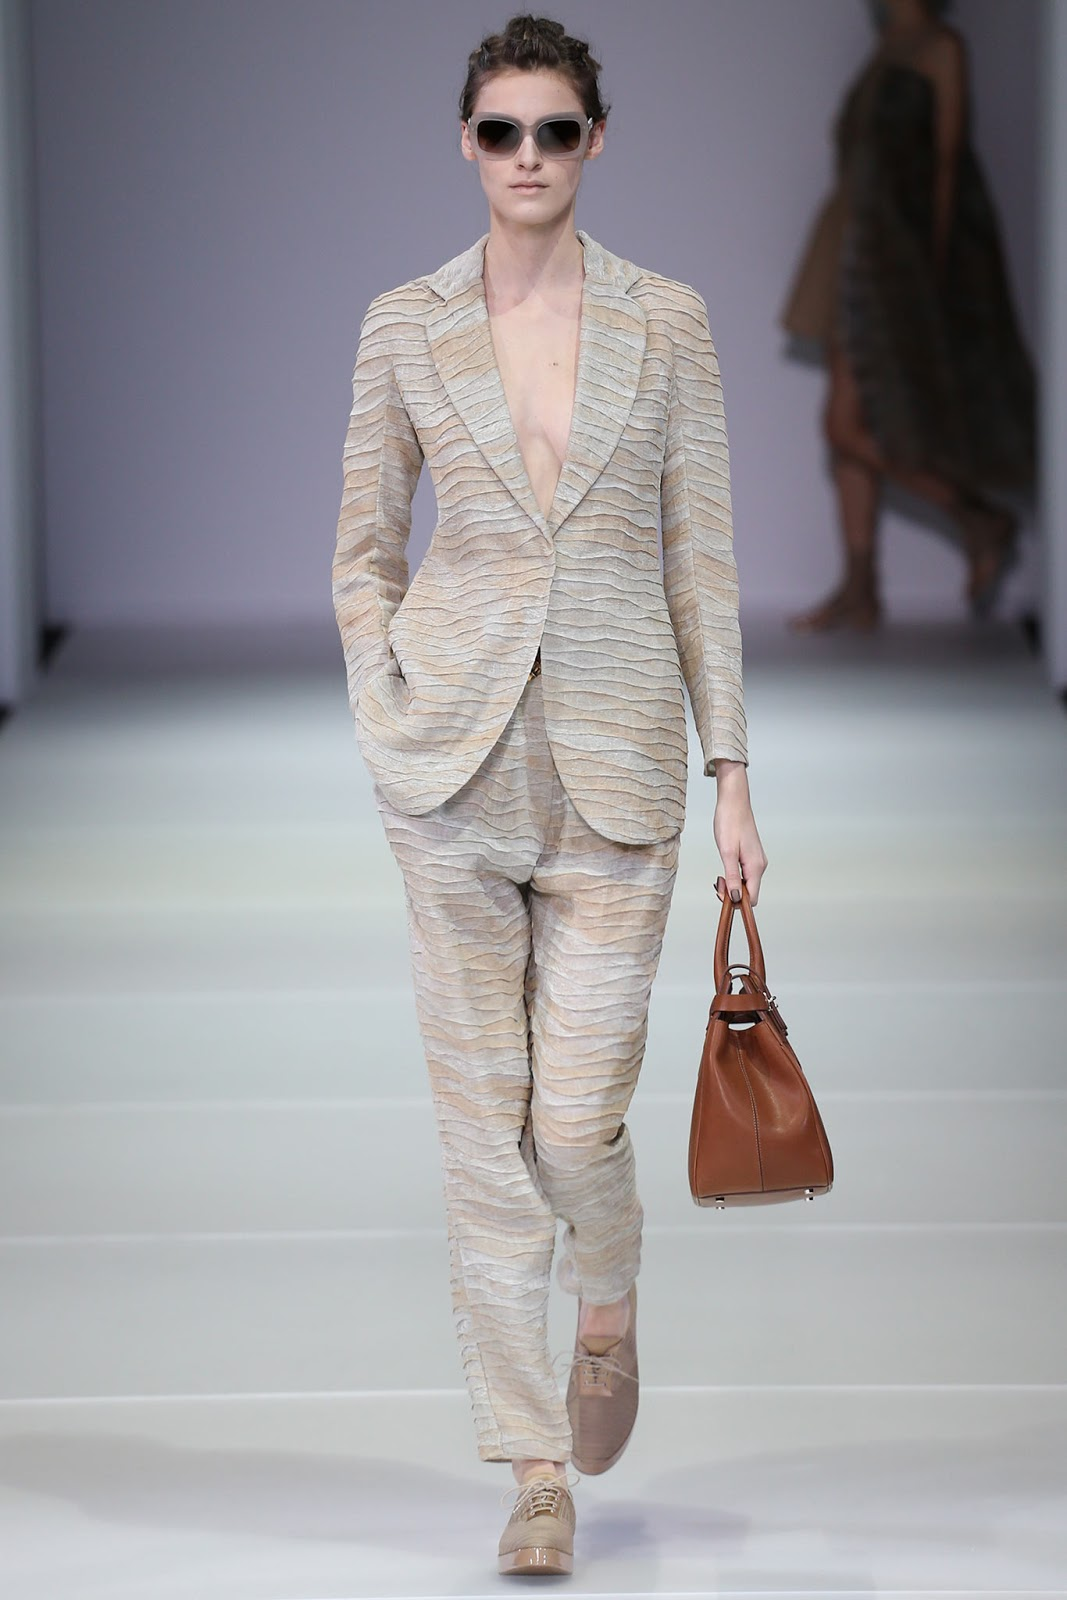 Giorgio Armani / Spring/Summer 2015 trends / trouser suit / styling tips and outfit inspiration / via fashioned by love british fashion blog